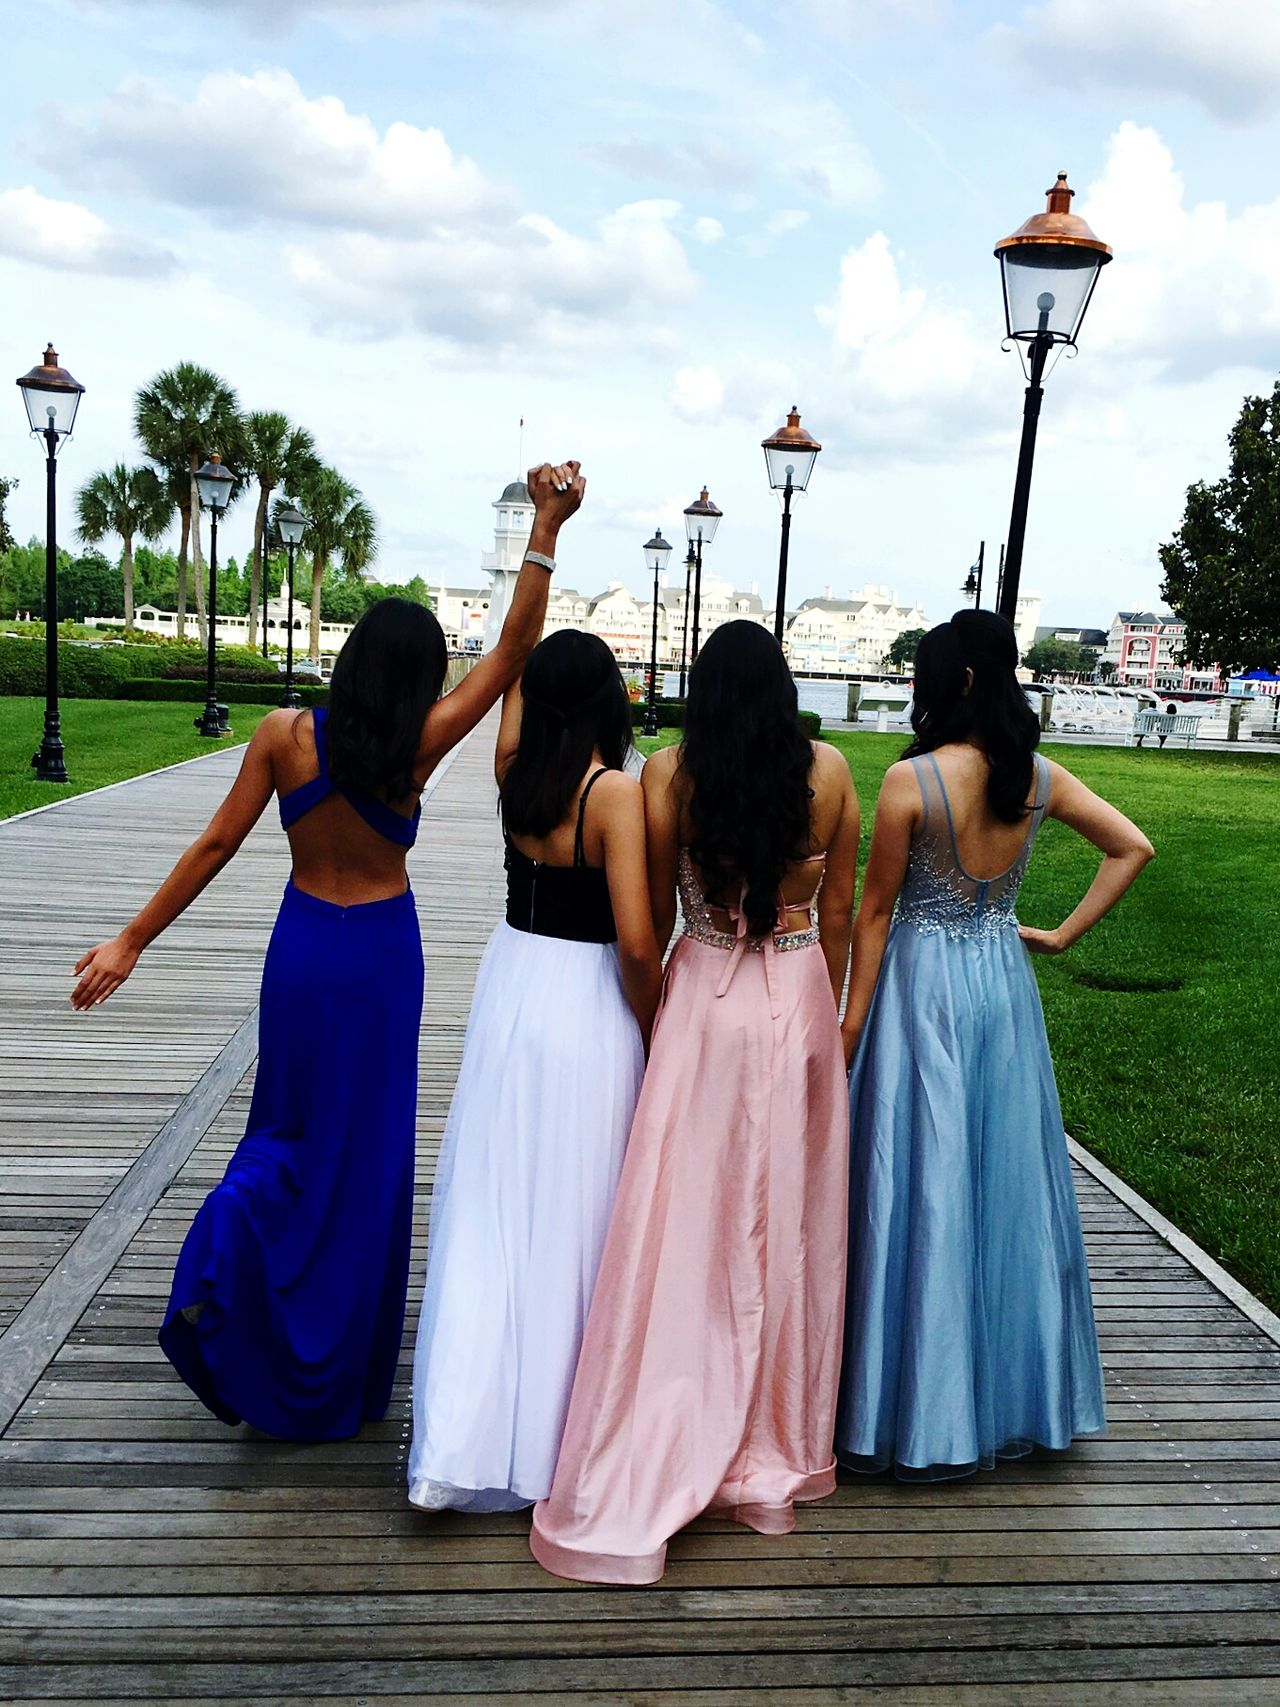 Beautiful stock photos of prom, rear view, cultures, full length, friendship